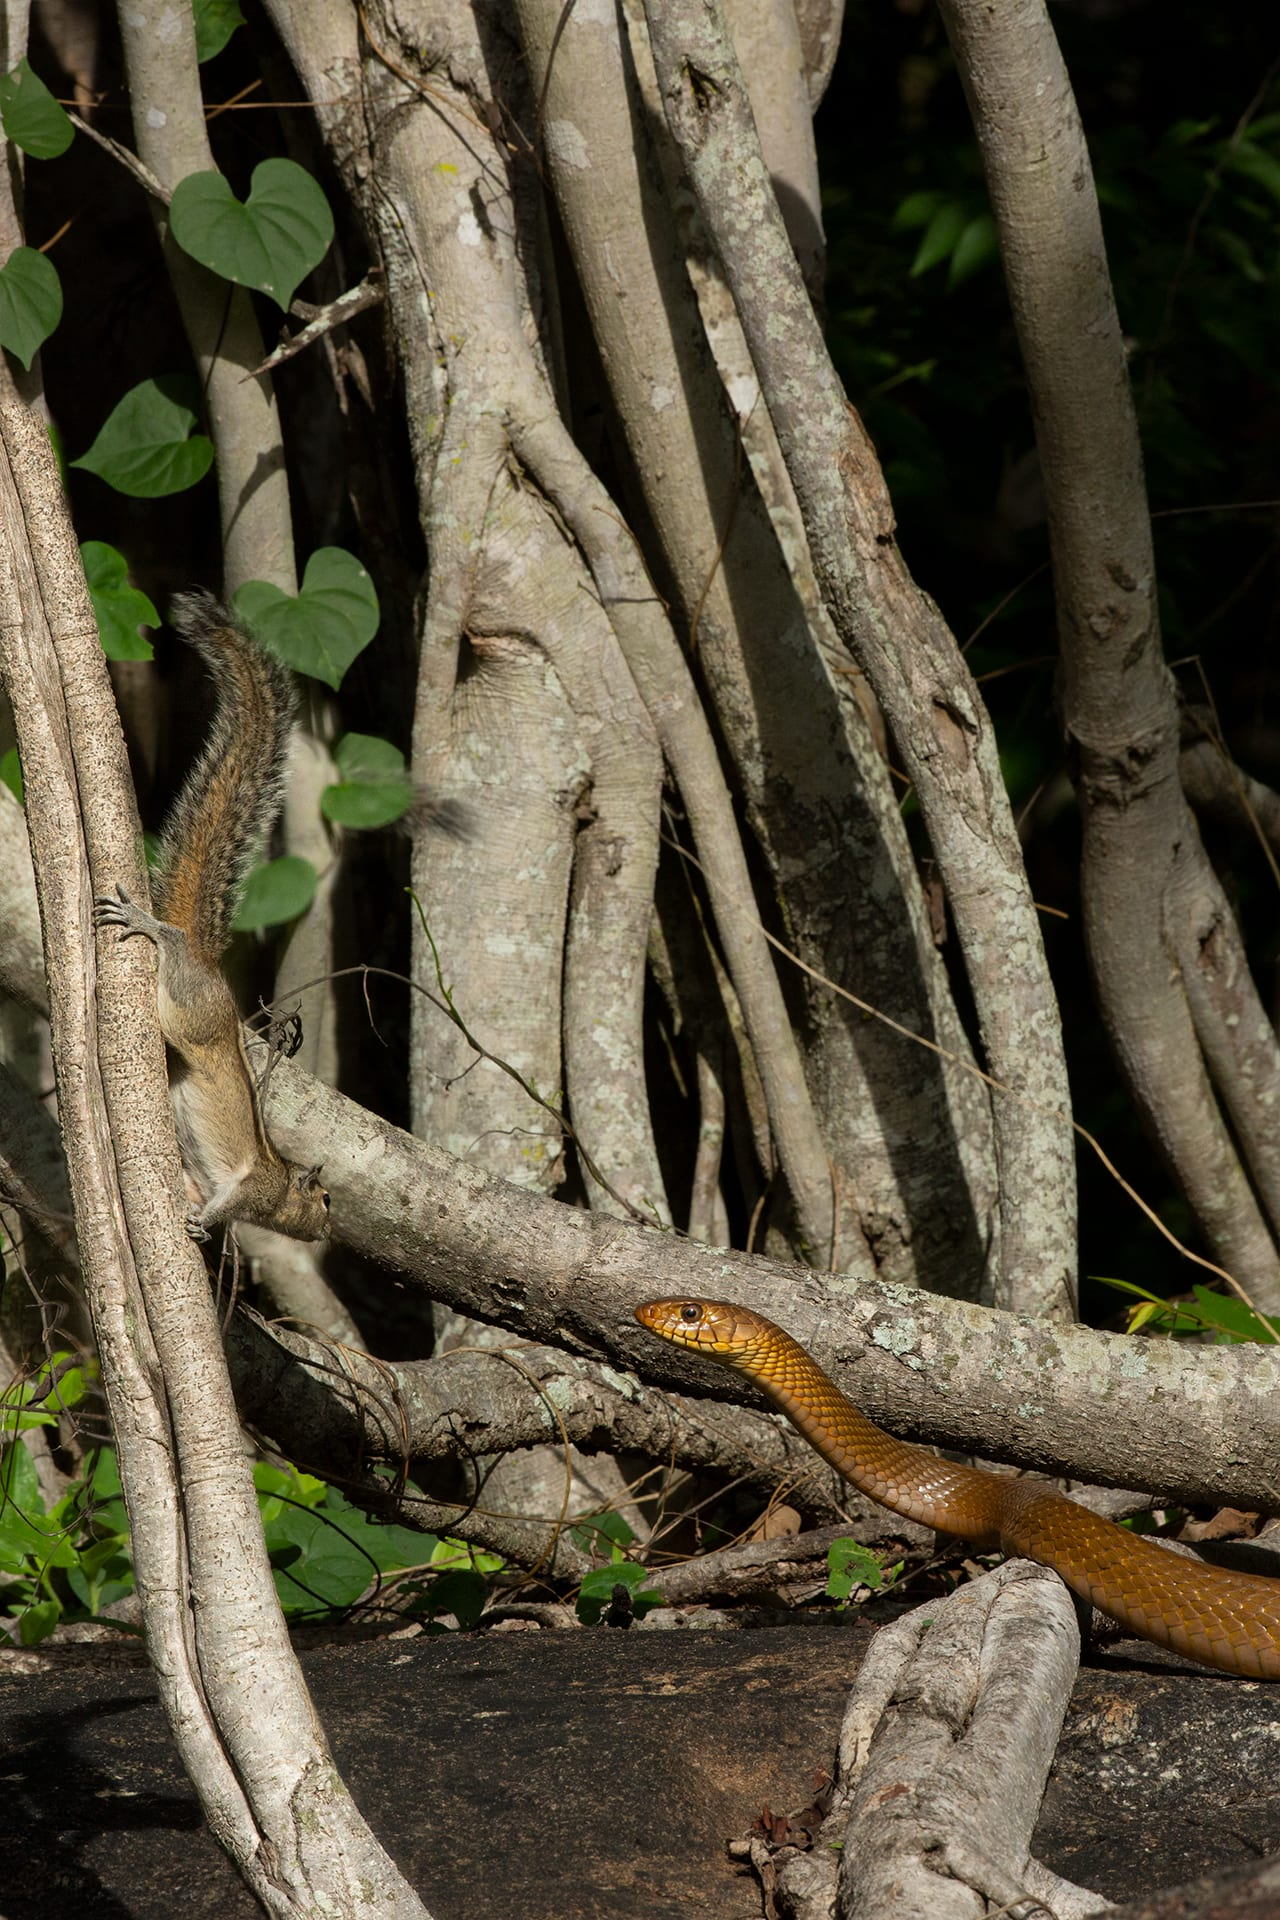 An Indian rat snake face to face with an Indian palm squirrel